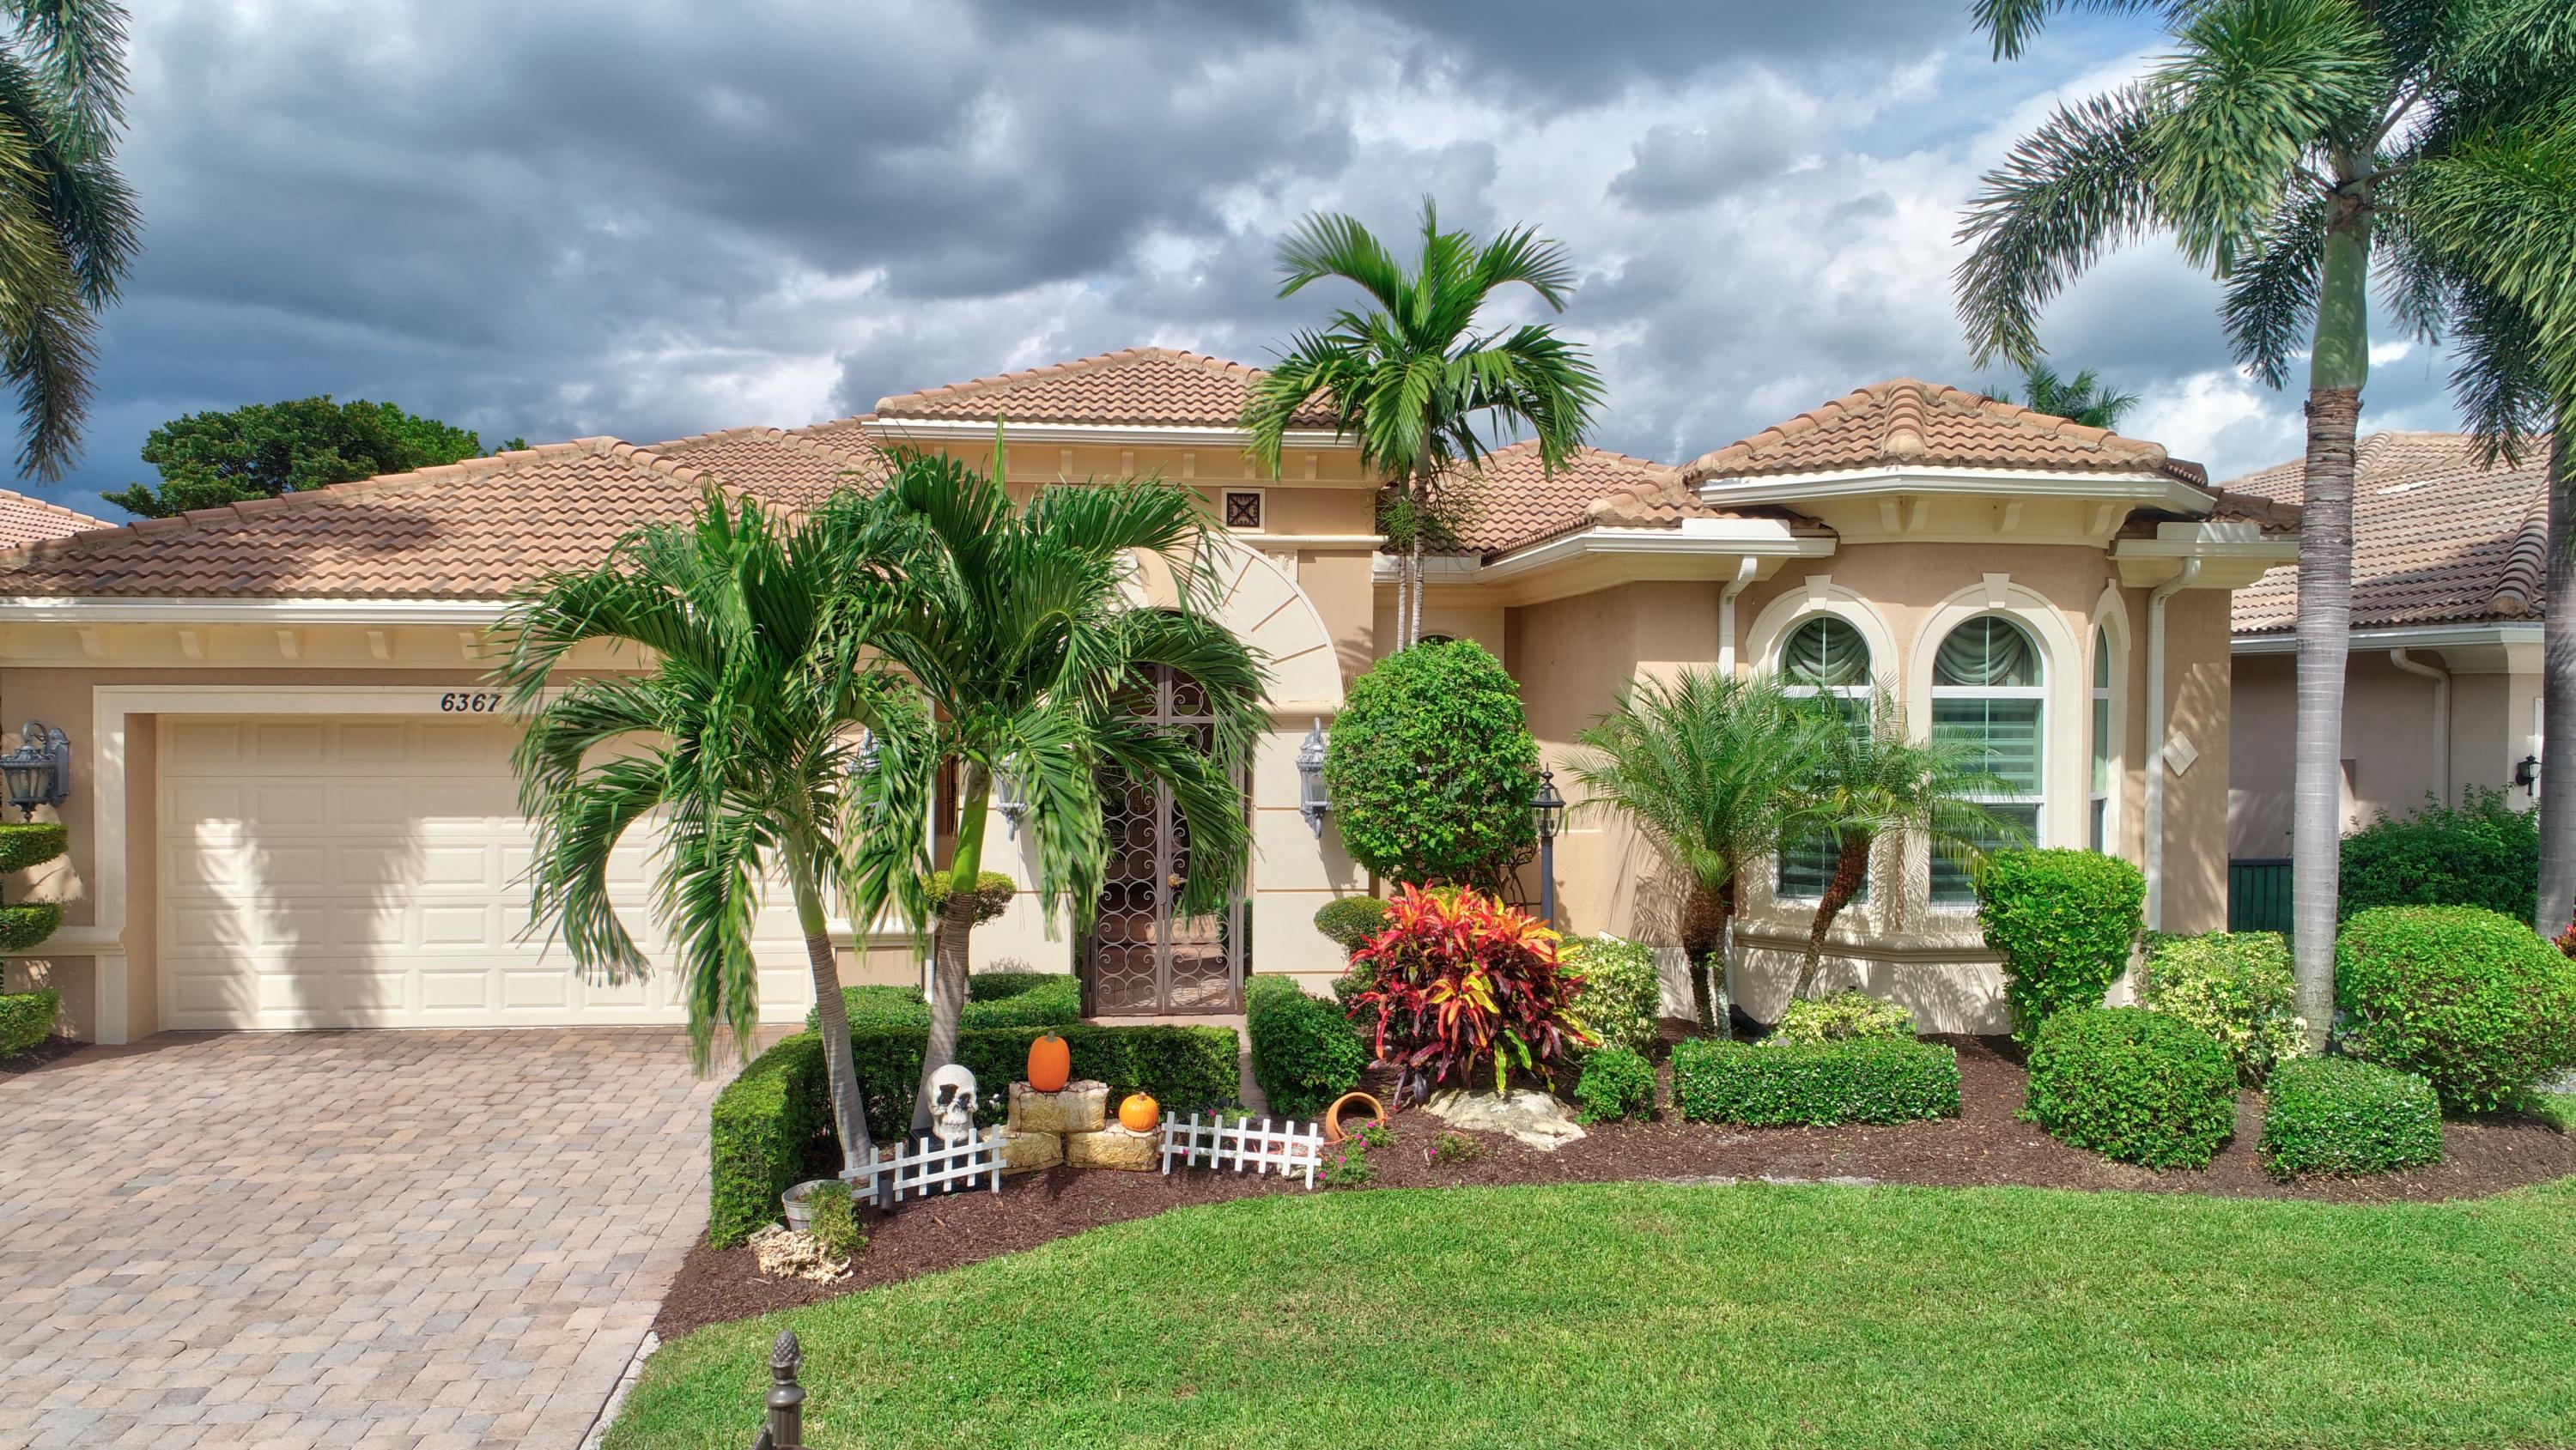 Home for sale in Azura Boca Raton Florida